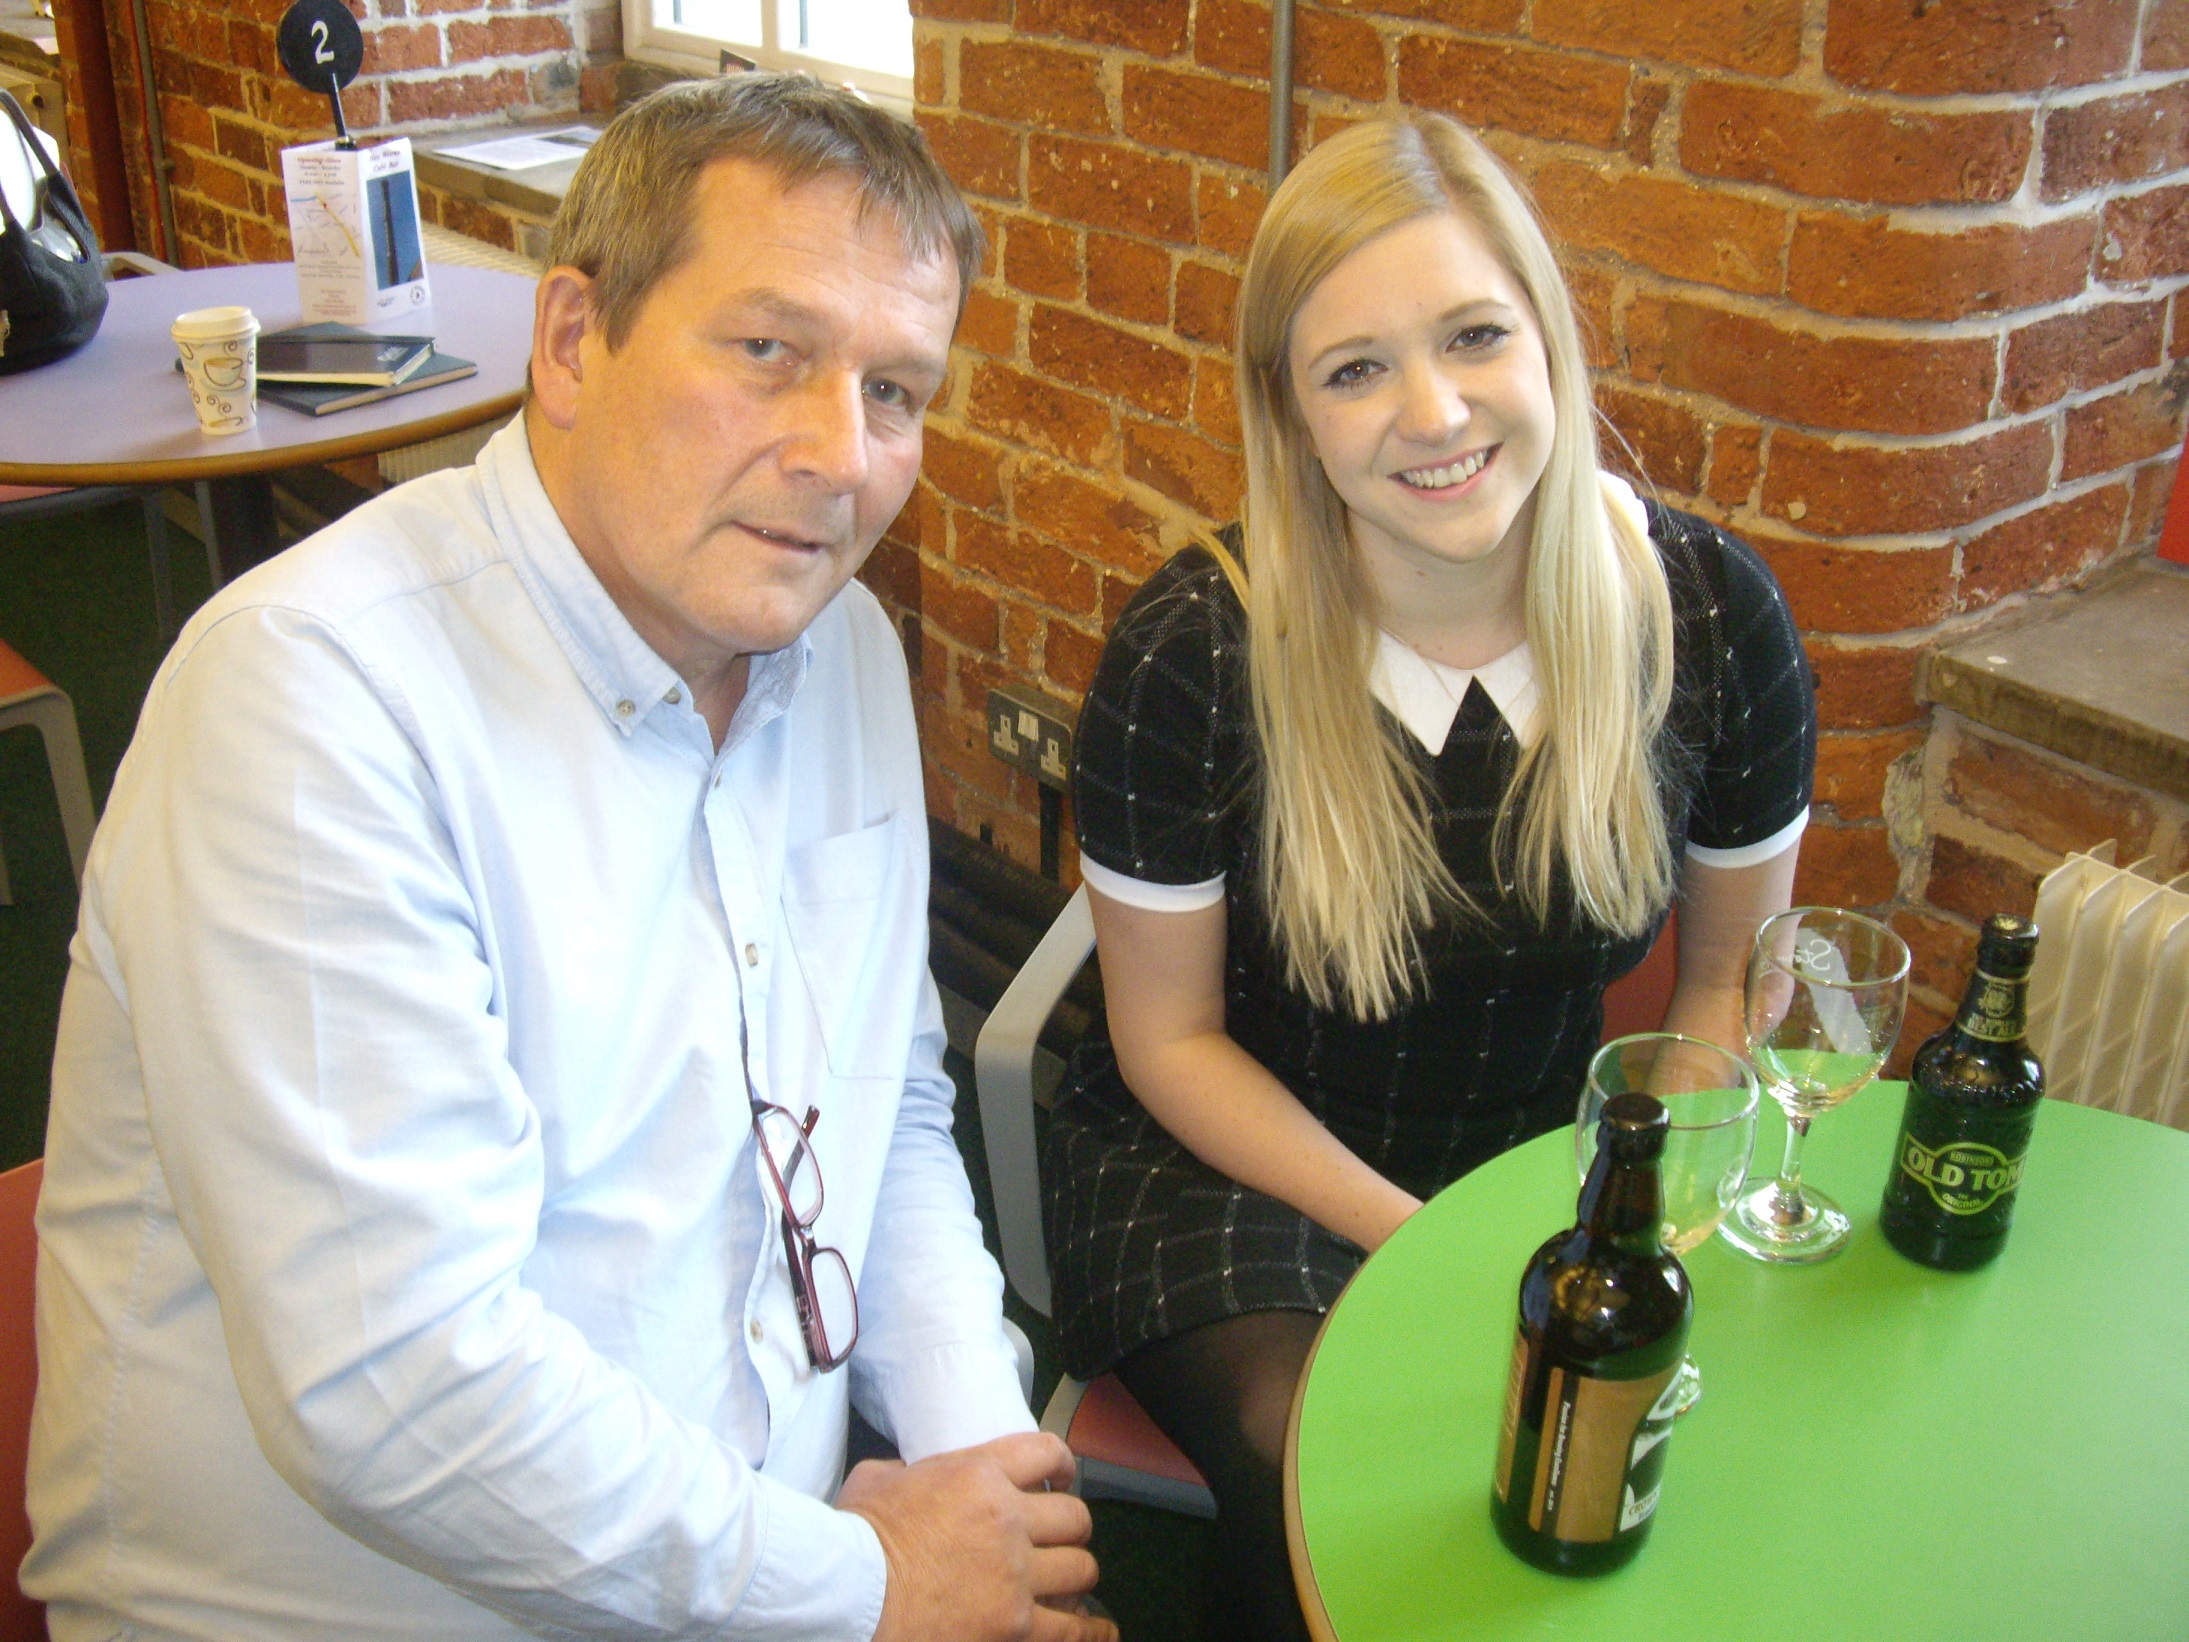 Hat Works Café and Bar owner Ian Mullally with Claire Stott from Orbit Developments